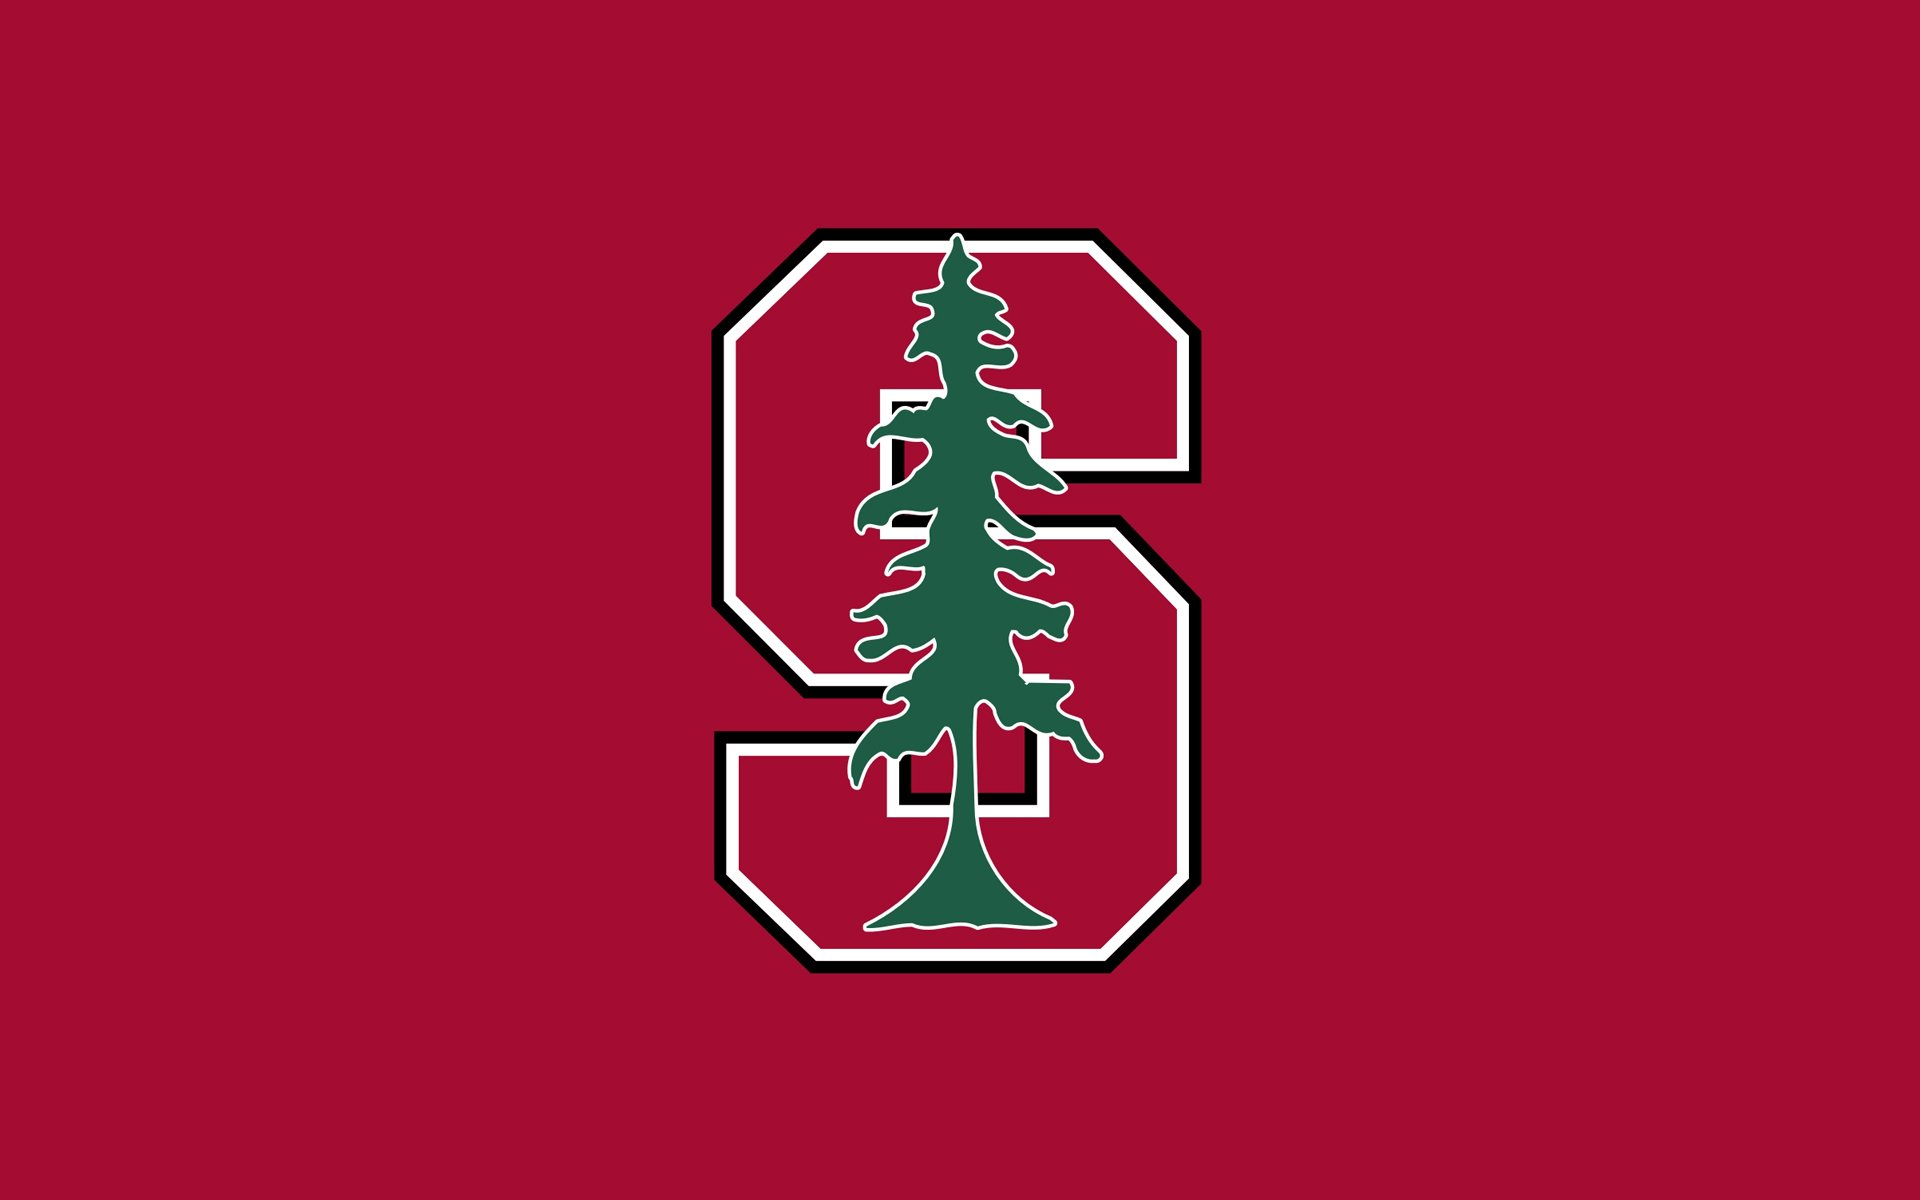 Stanford Football Wallpaper